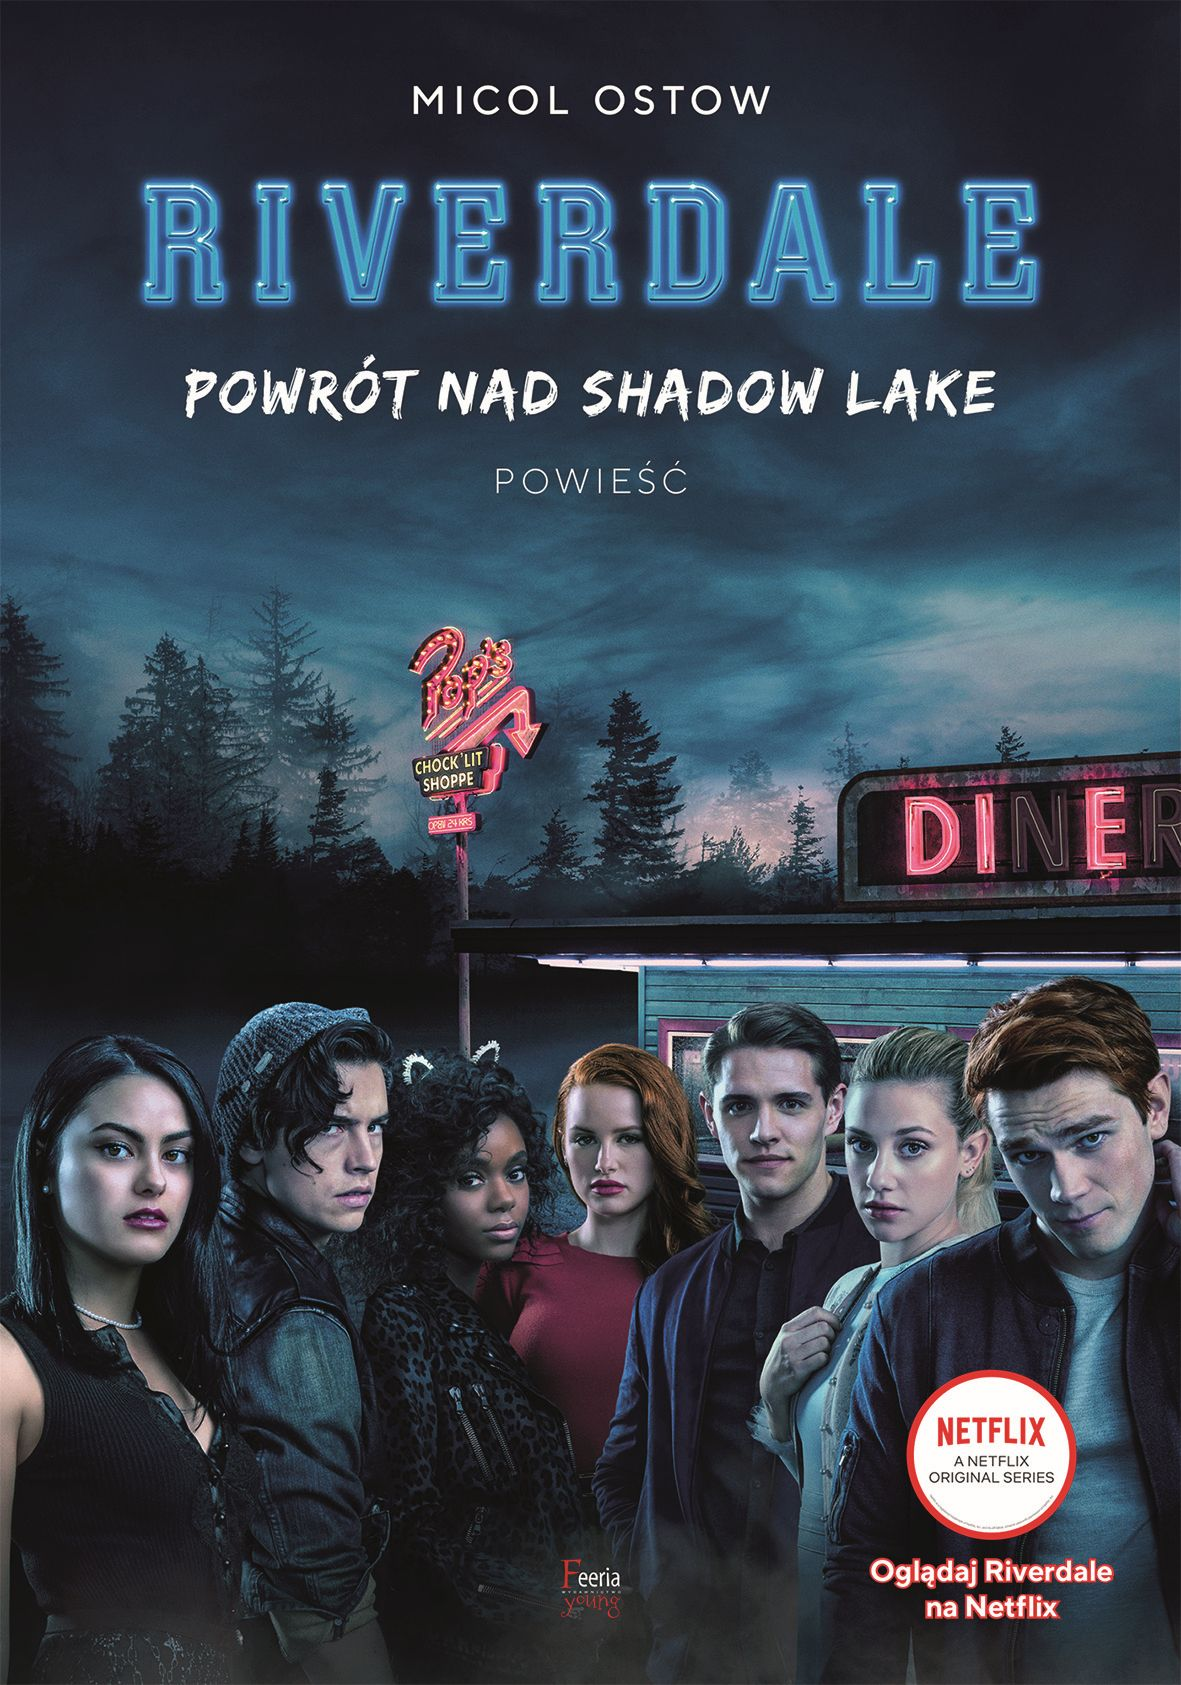 Riverdale. Powrót nad Shadow Lake